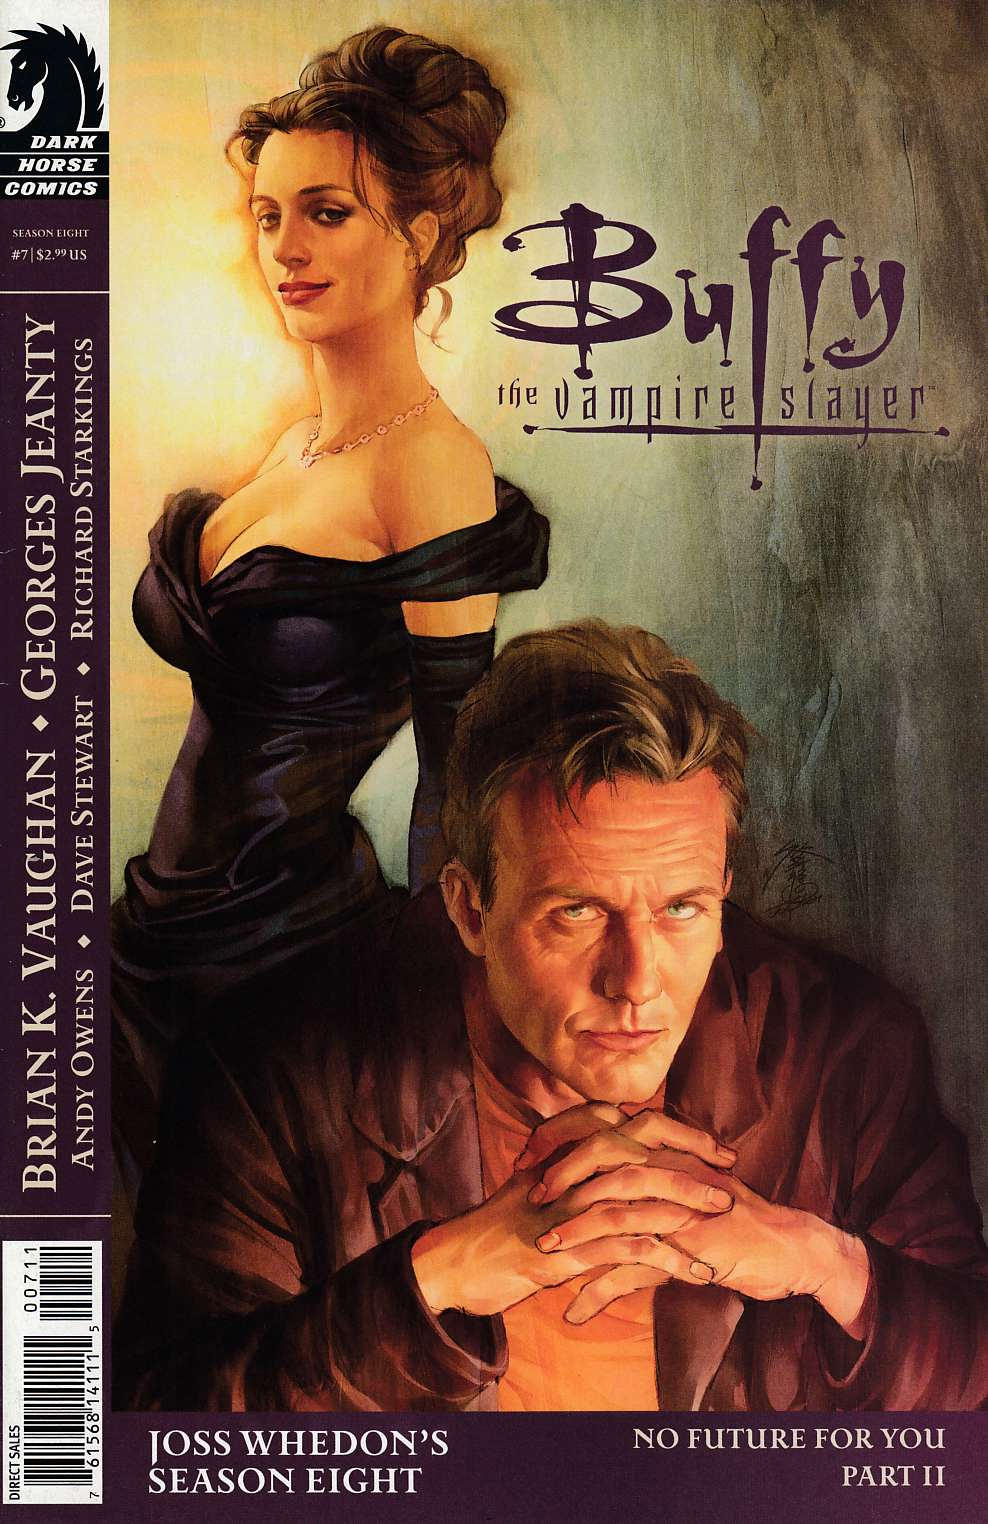 Buffy the Vampire Slayer Season 8 #7 Cover A Very Fine (8.0) [Dark Horse Comic] THUMBNAIL